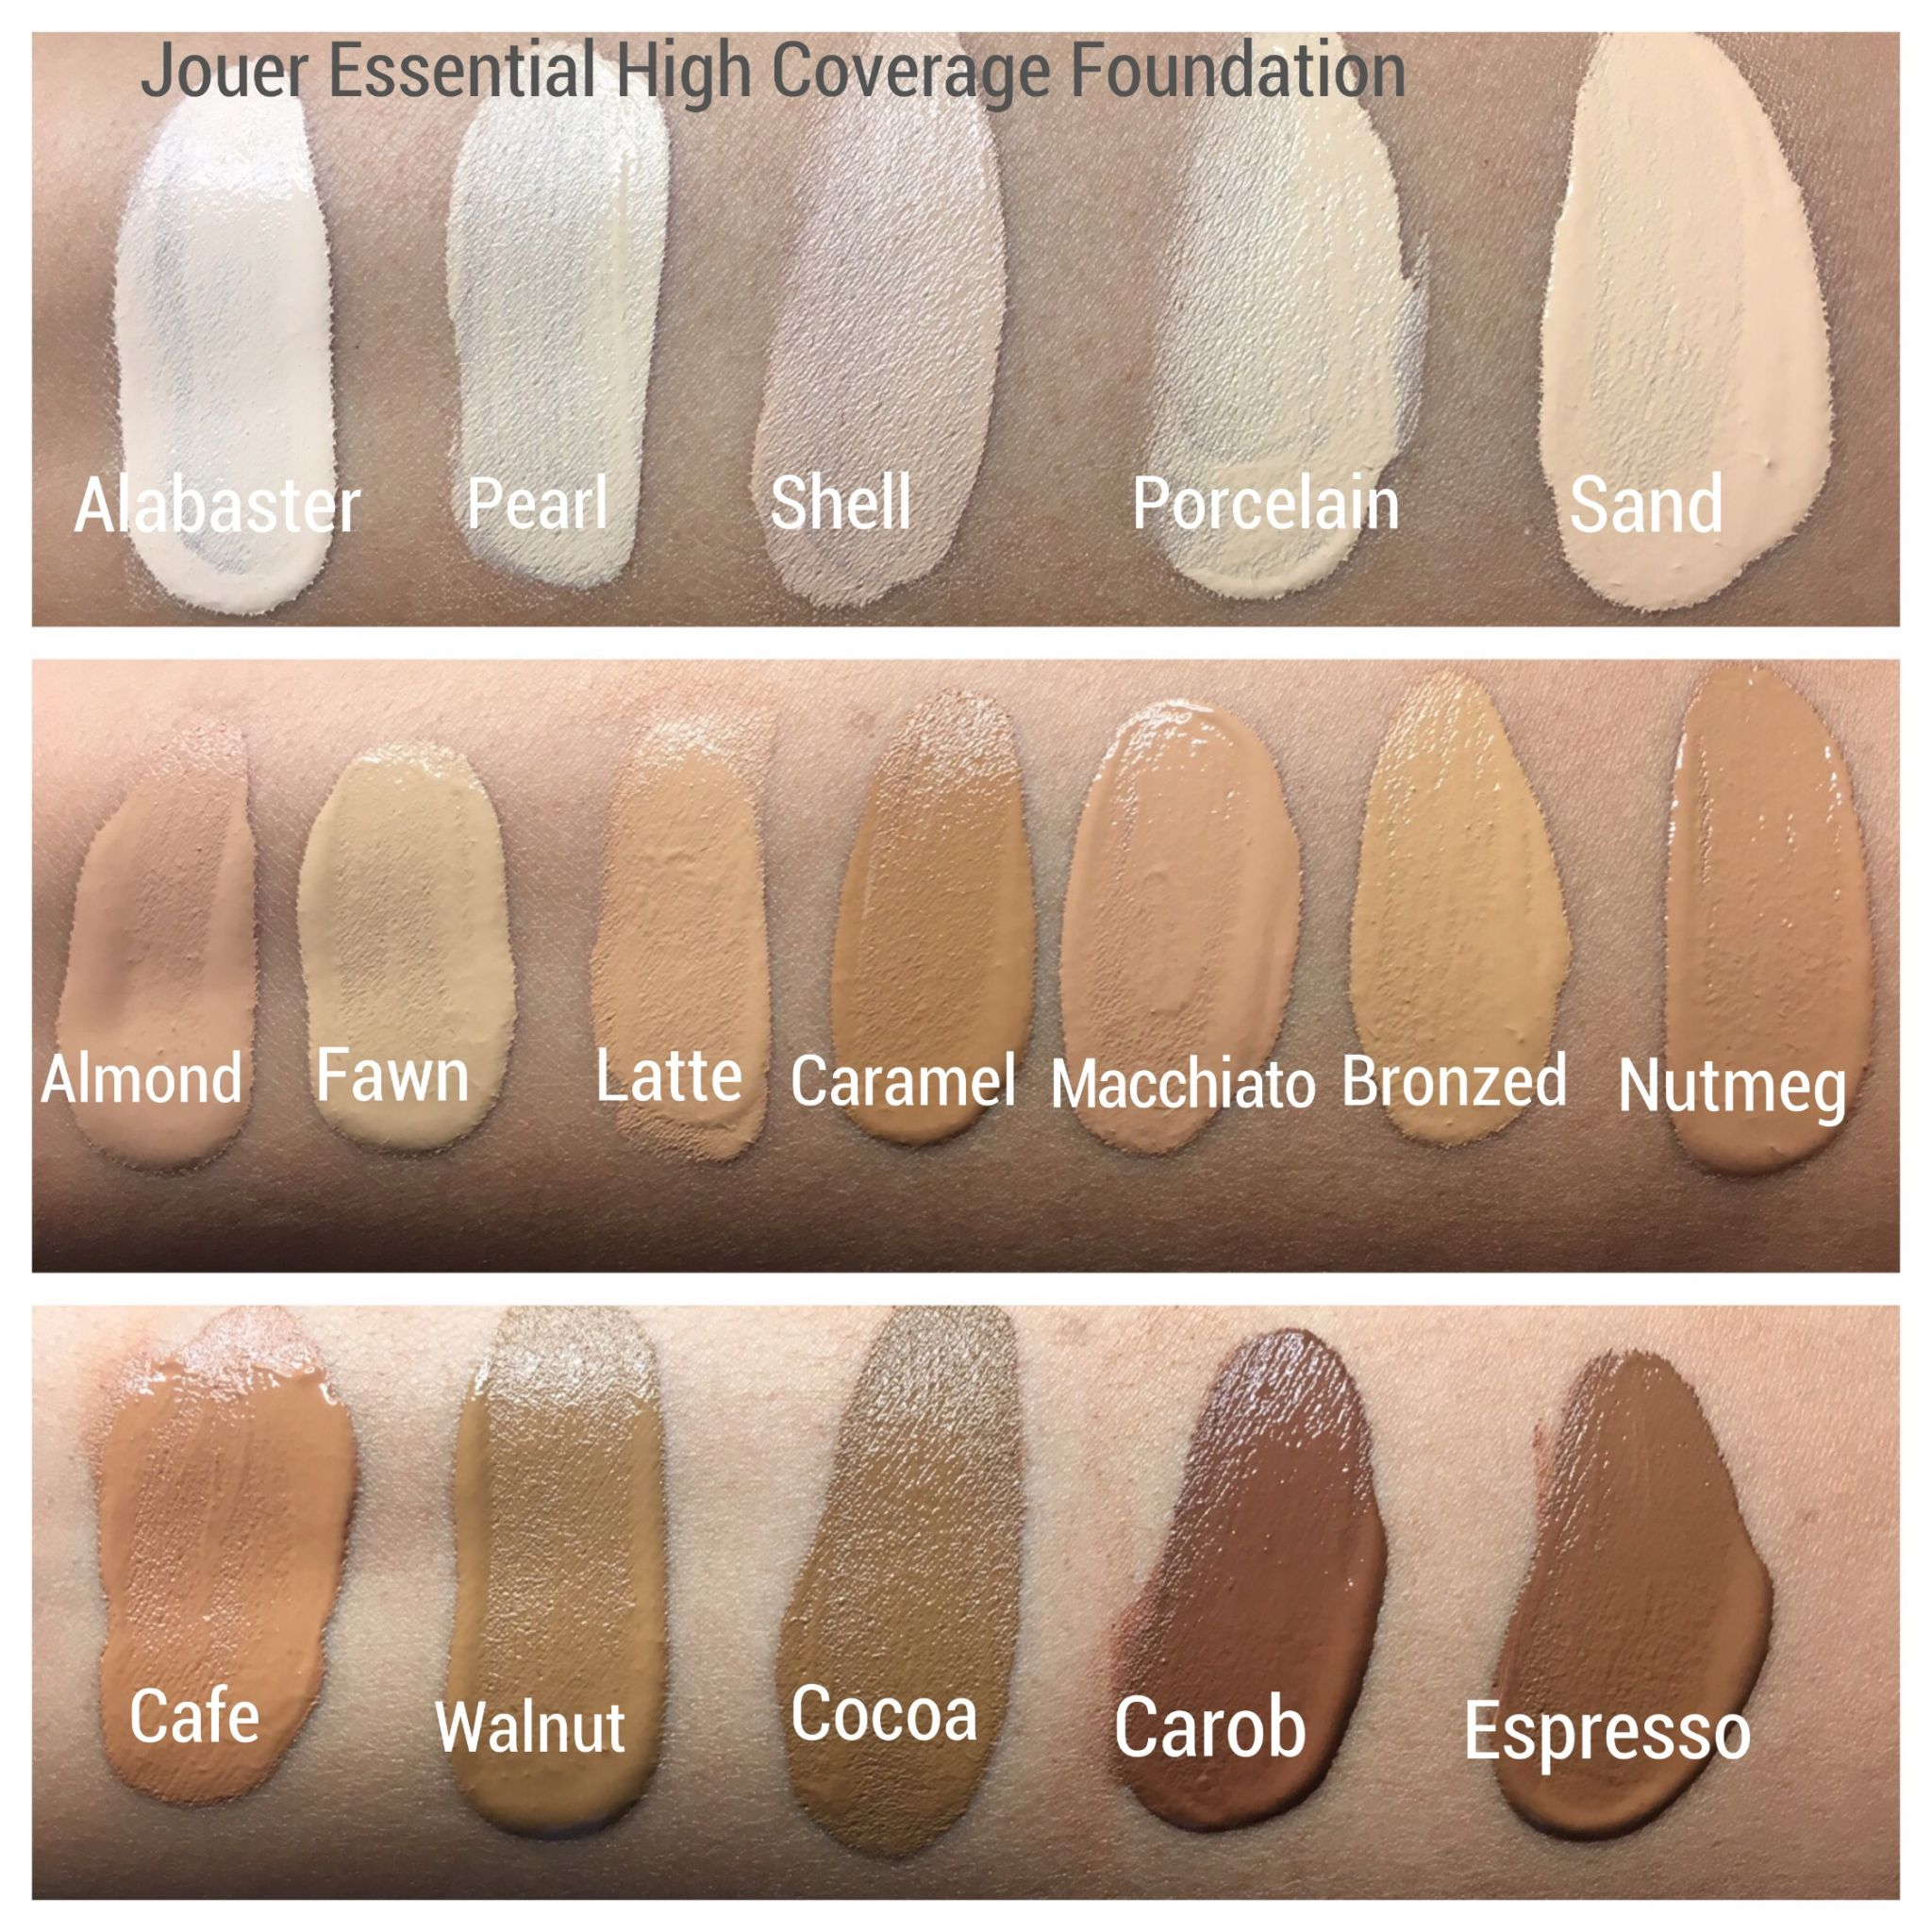 Jouer Essential High Coverage Foundation Swatches Cali